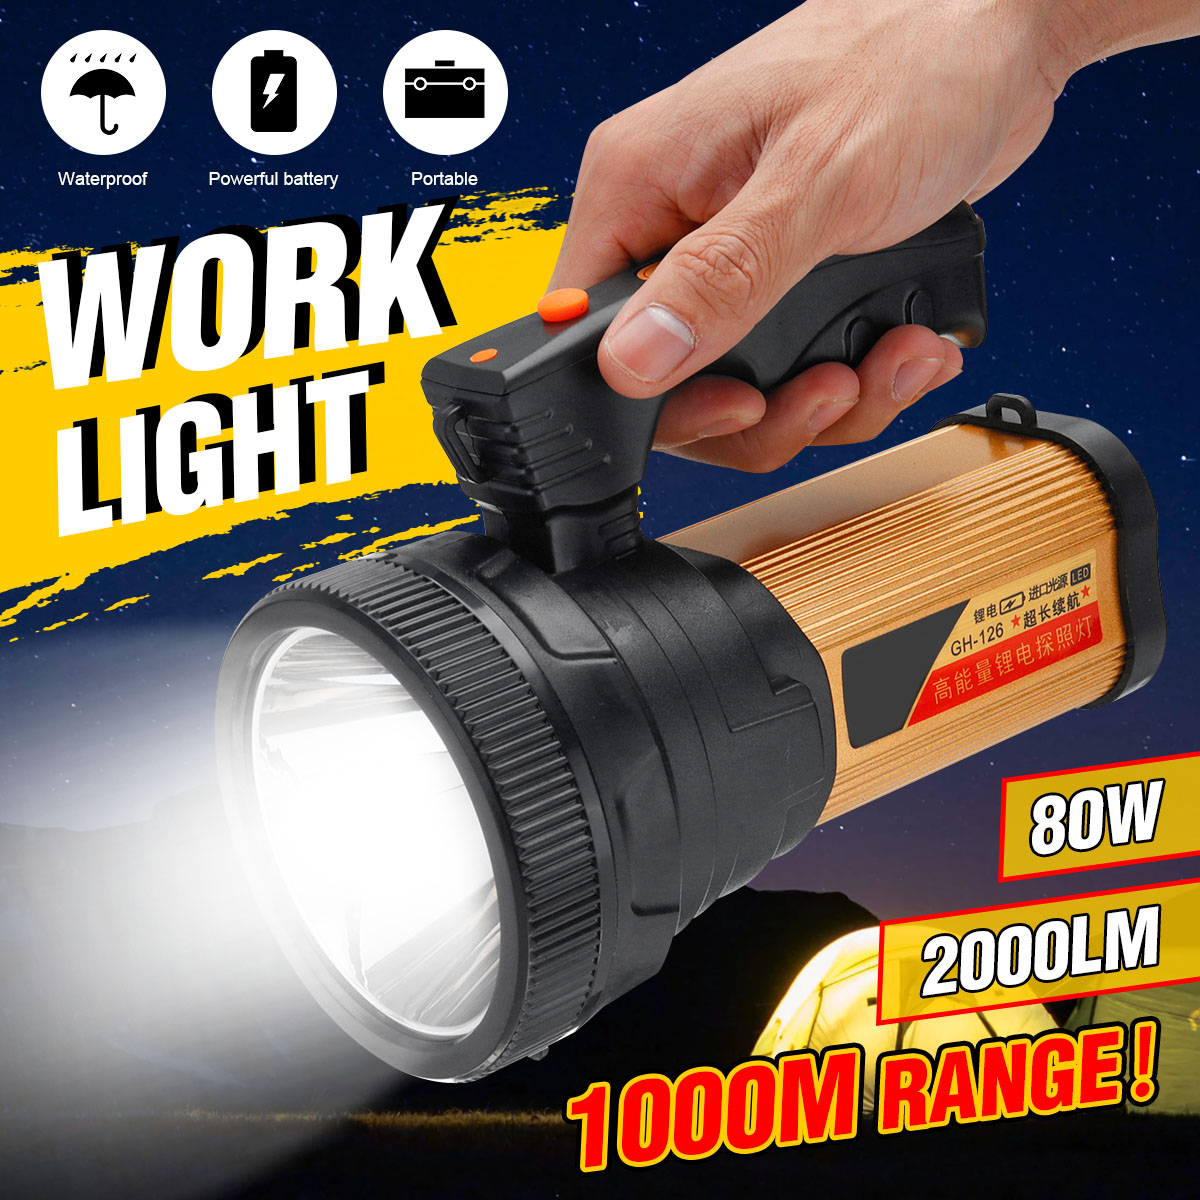 5000MAh 2000lm 80W LED Work Light Rechargeable Lamp Led Handheld Portable Flashlight Searchlight Lantern For Outdoor Camping